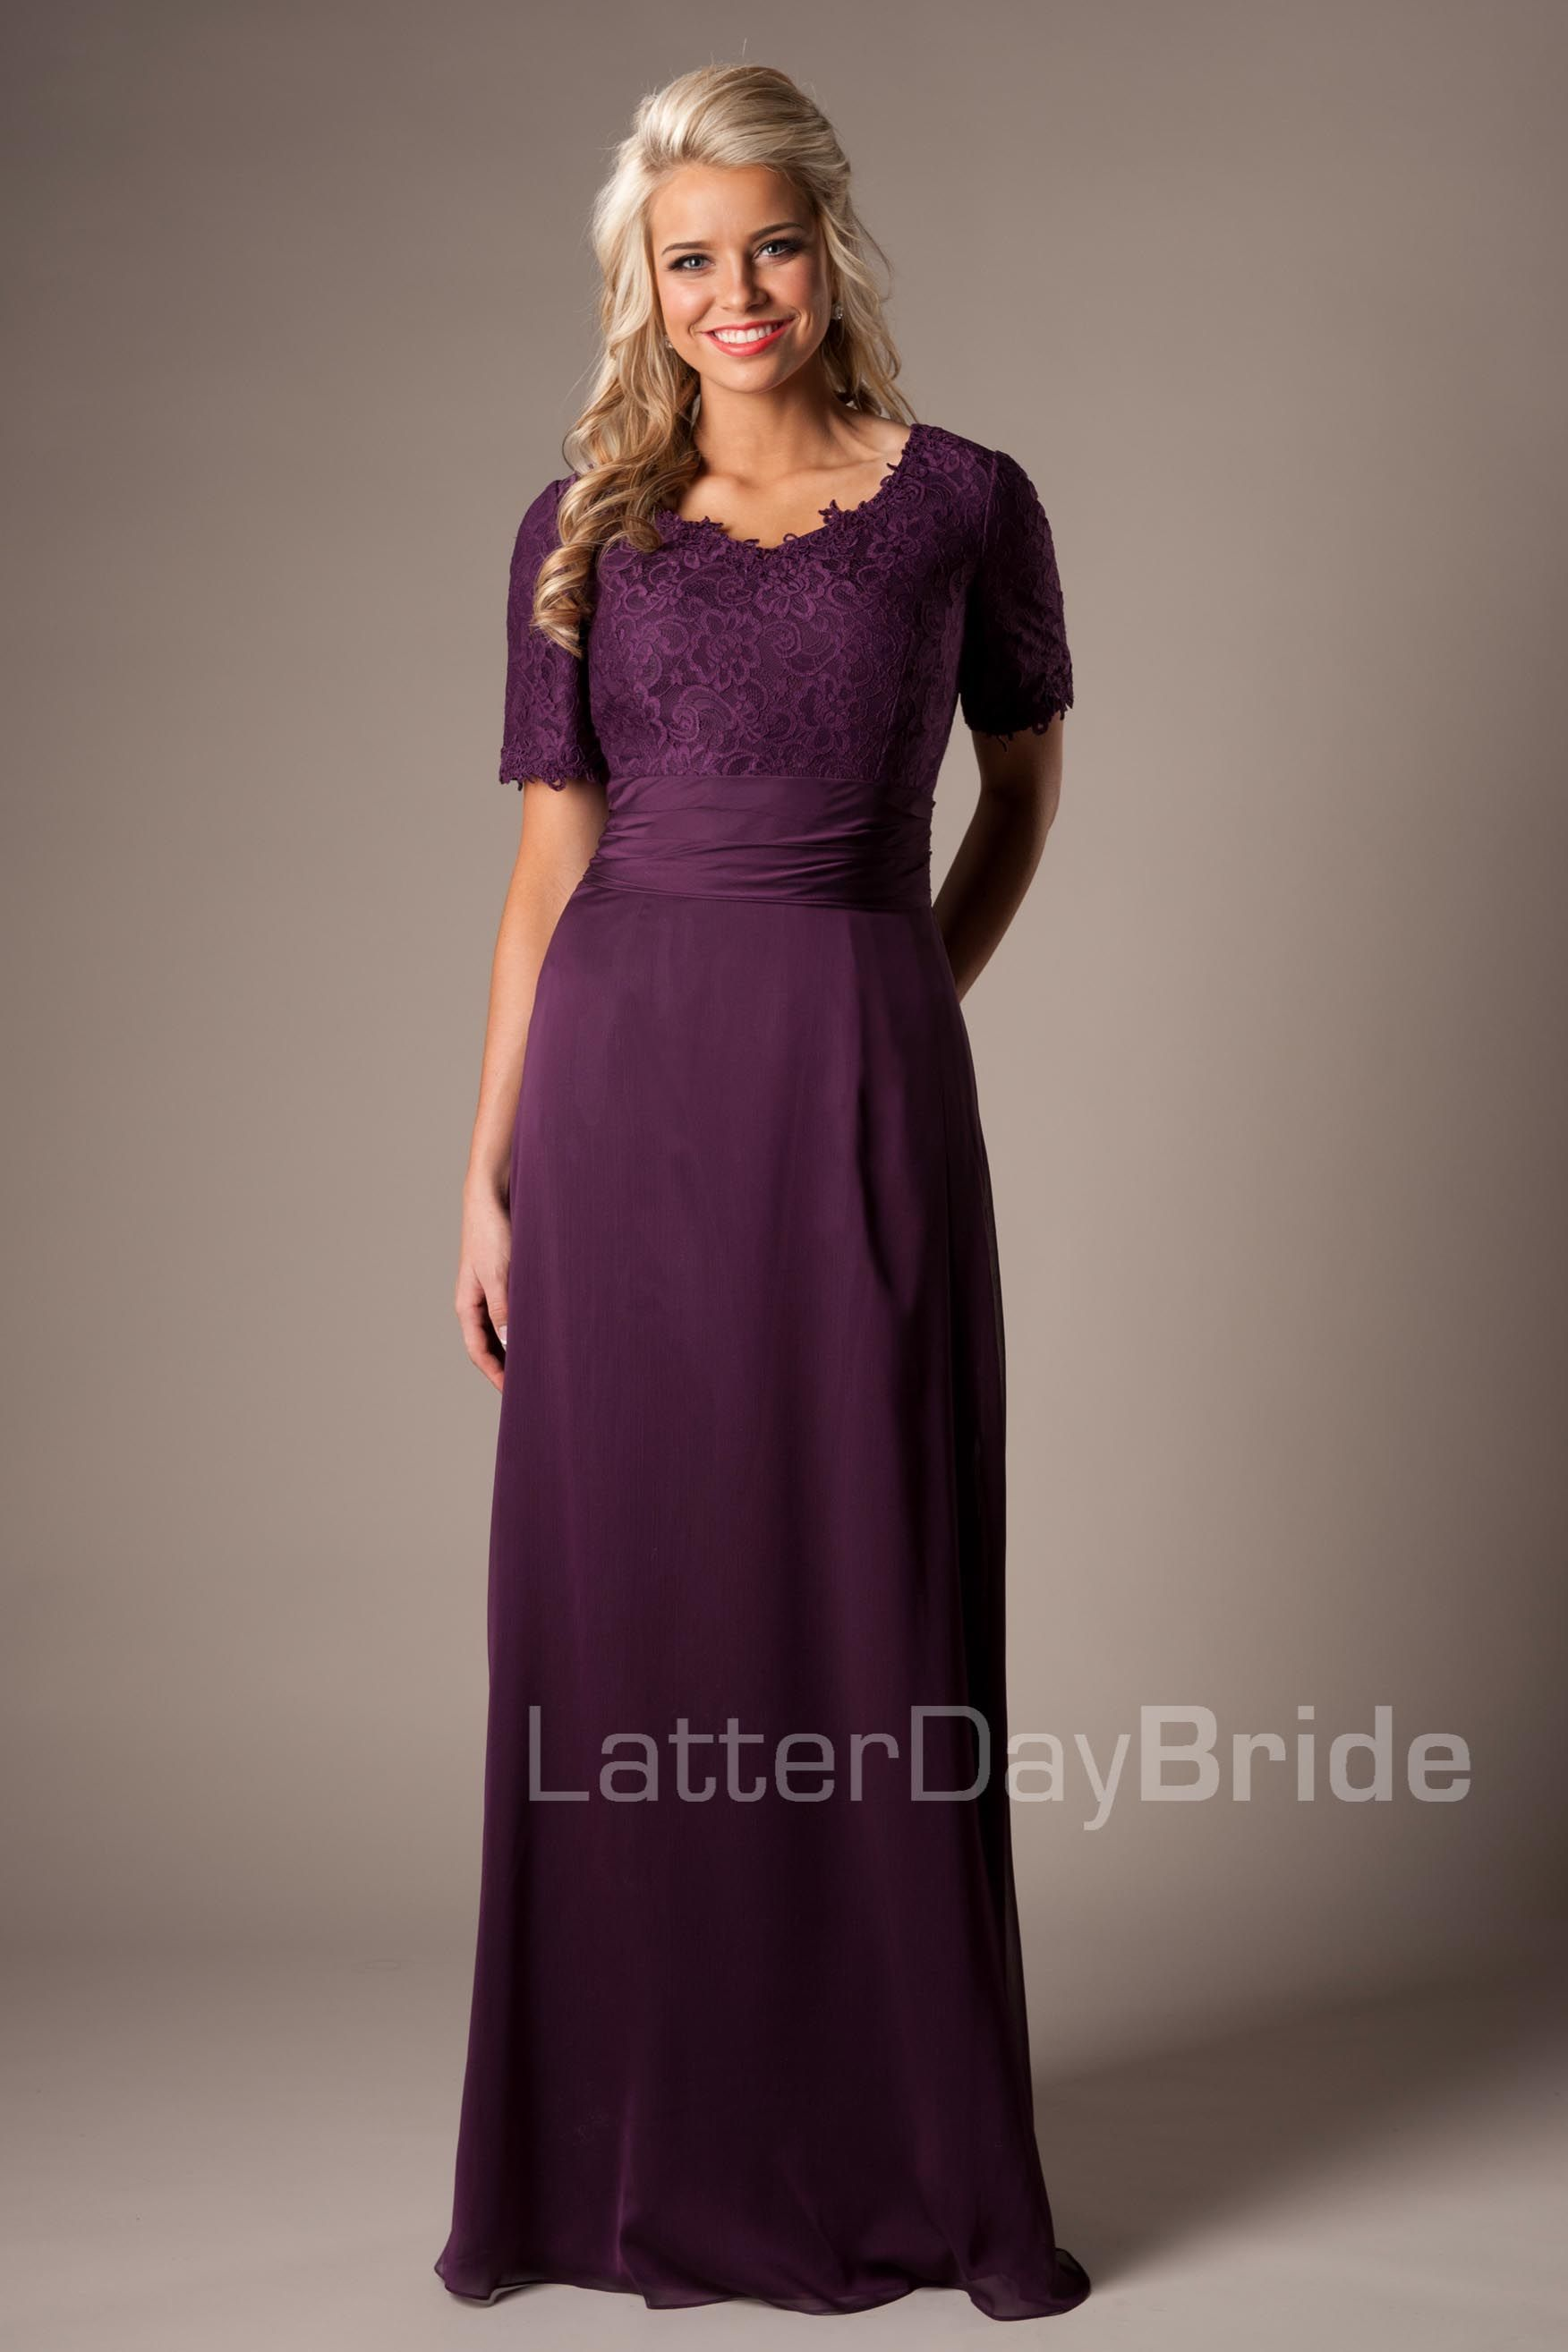 Modest purple mother of the bride dress motb modest wedding modest purple mother of the bride dress motb ombrellifo Image collections